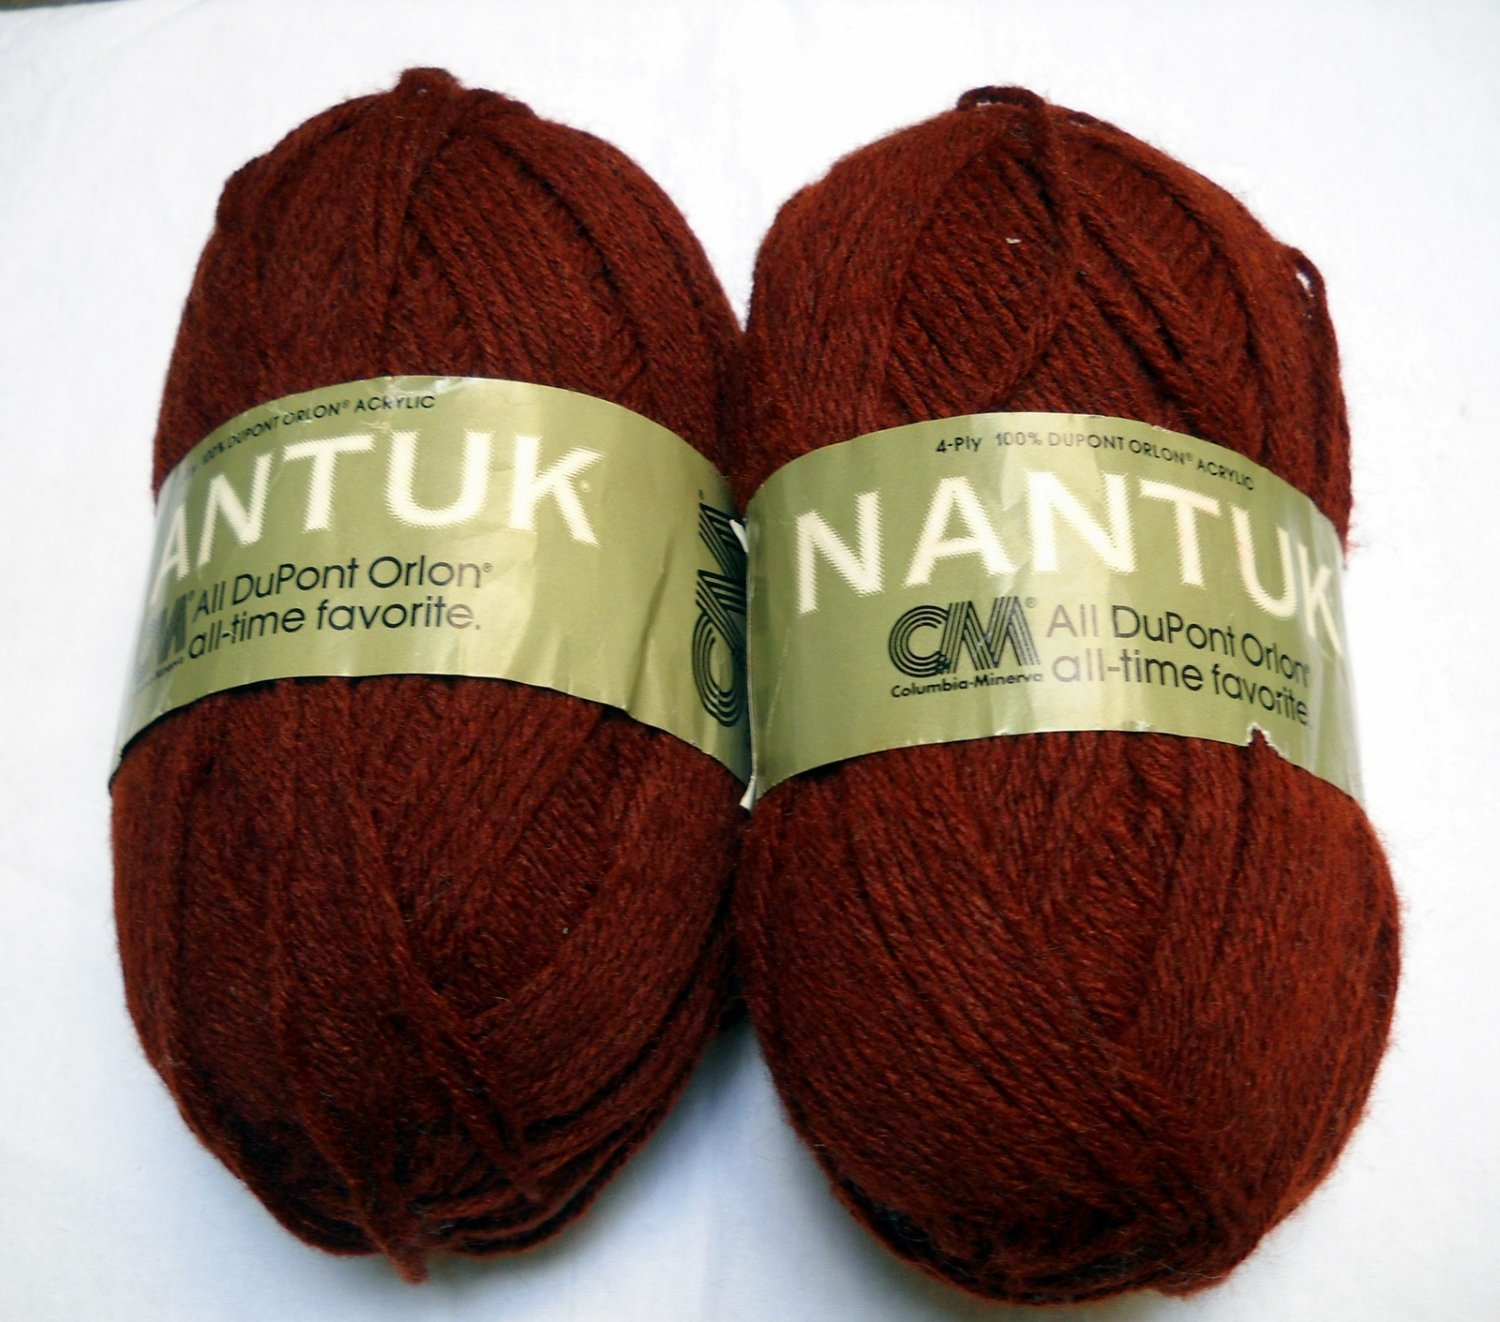 Columbia Minerva Nantuk 4 ply Yarn 4 oz skein - lot of 2 skeins dk rust  color 5995